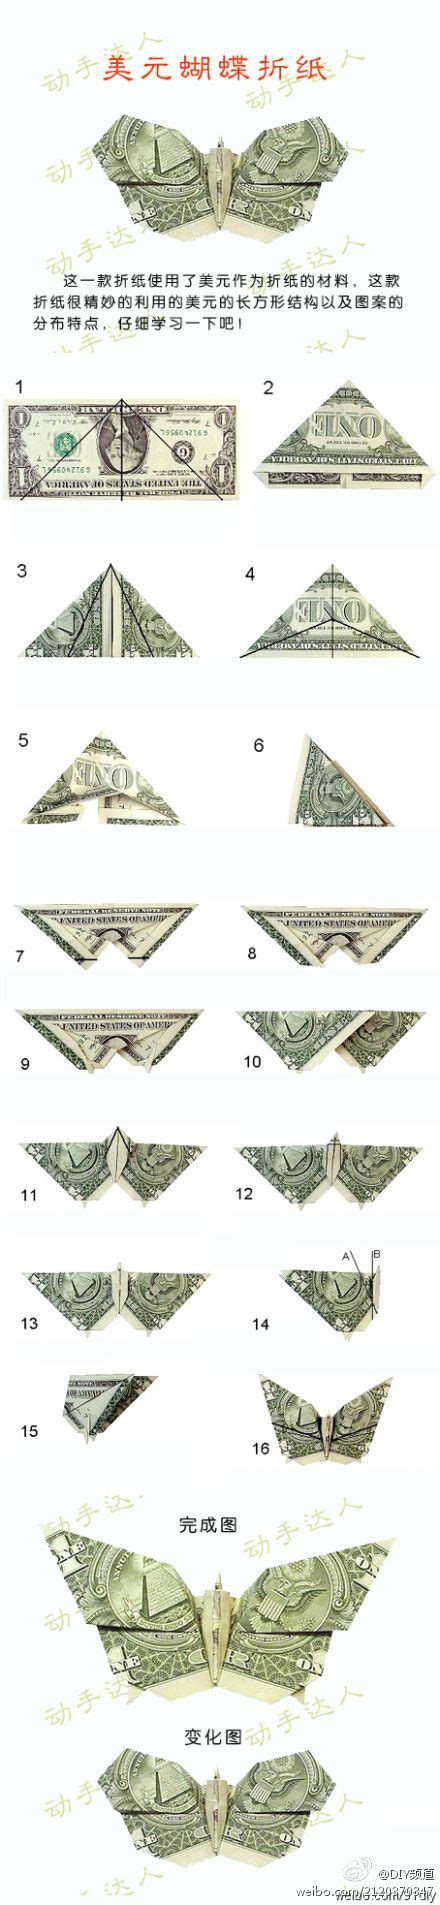 Best Paper To Make Money - 25 best ideas about origami on